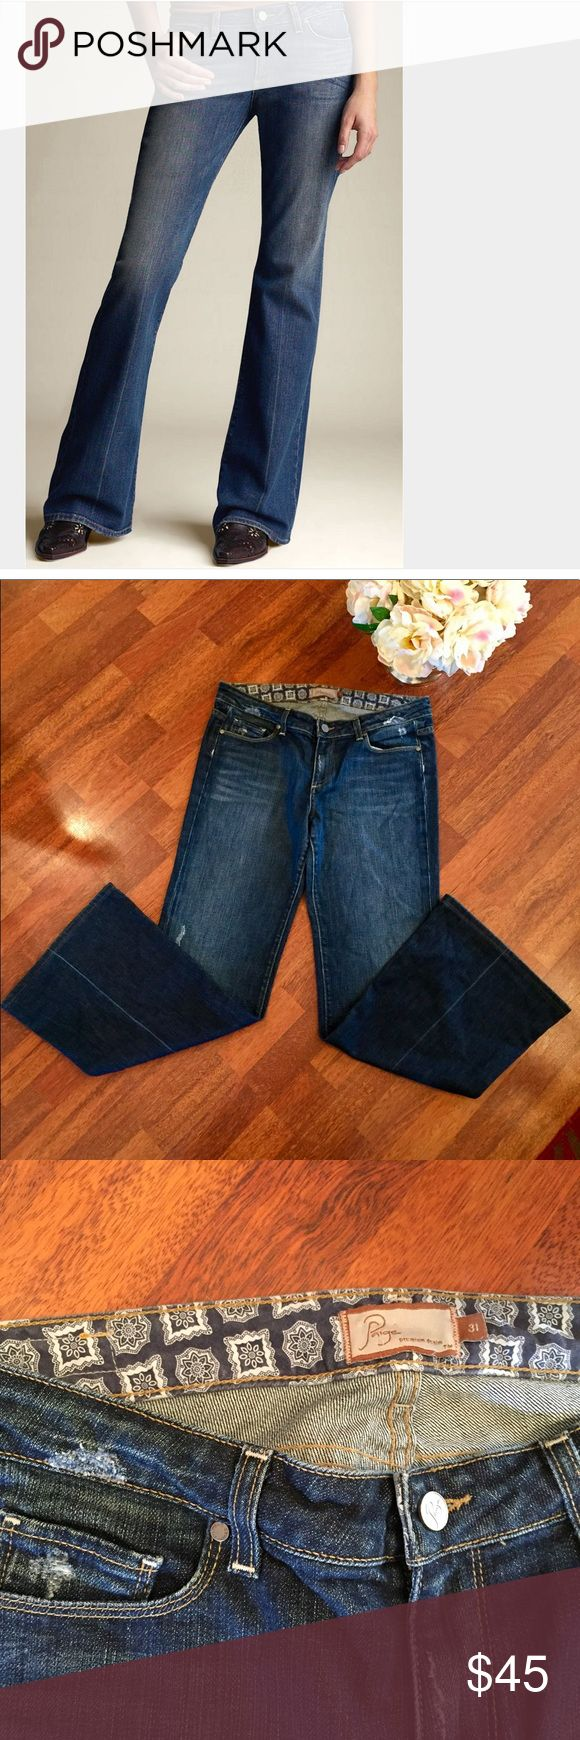 Paige Premium Denim 'Robertson' Paige Premium Denim 'Robertson' jeans. Distressed finish with flared legs.  98% cotton, 2% spandex. Approximate measurements: waist 34 inches, rise 9 inches, inseam 30.5 inches, cuff 22 inches. Paige Jeans Jeans Flare & Wide Leg